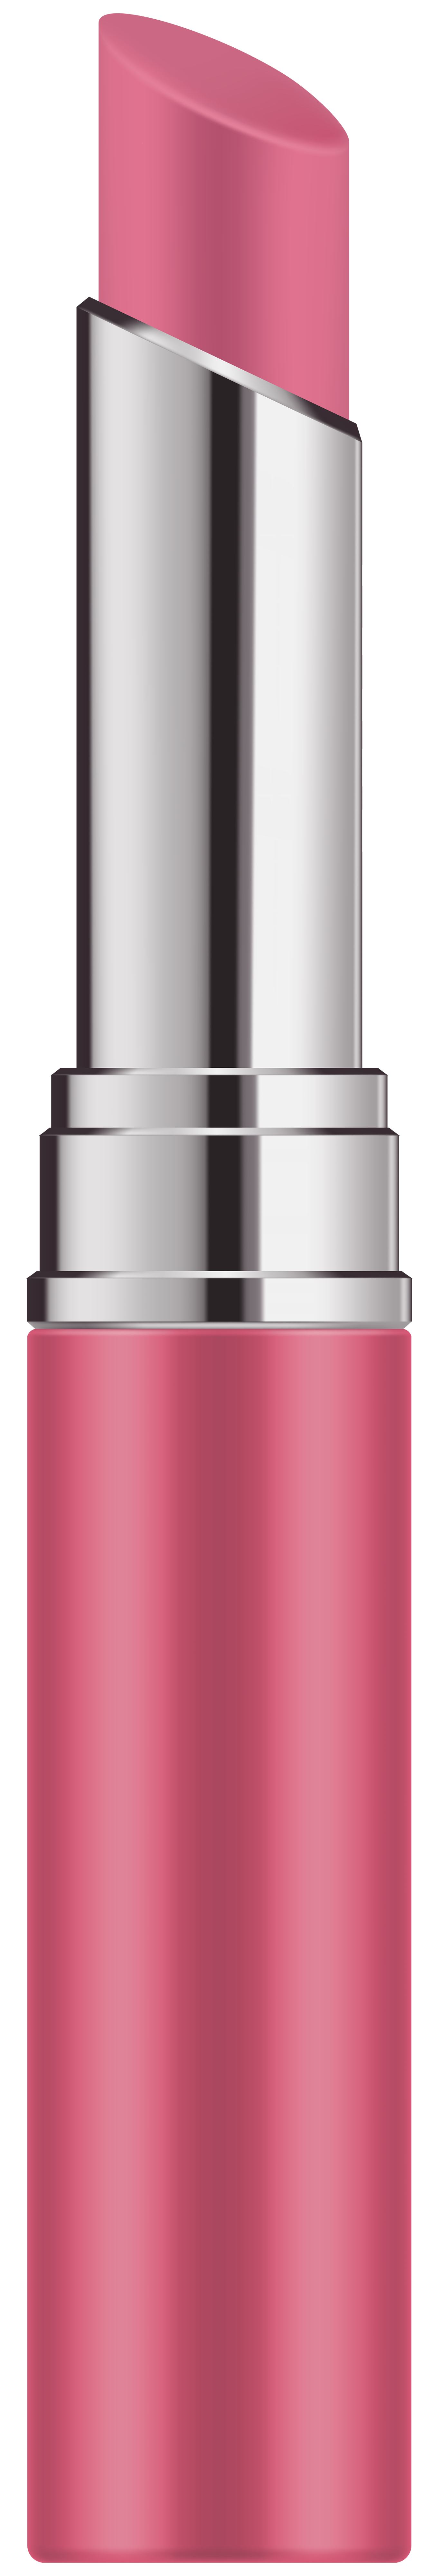 Clip art png image. Lipstick clipart pink lipstick